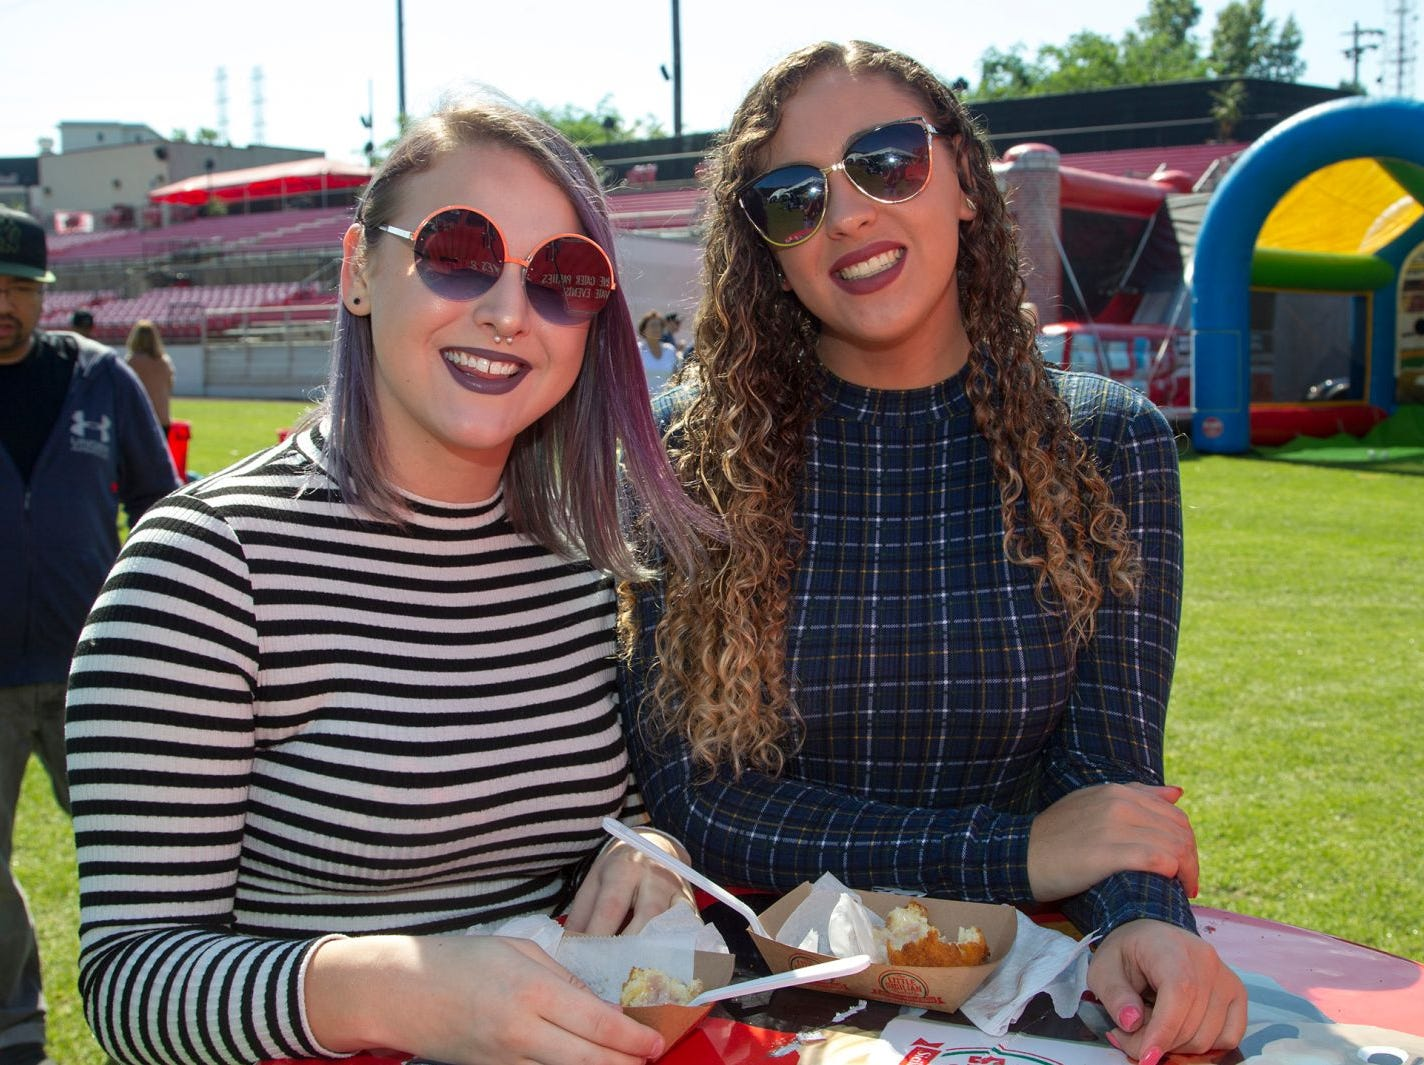 Holly Tornvall, Alex Migliore. The second annual Food Truck & Craft Beer Festival at Yogi Berra Stadium in Little Falls. 09/29/2018